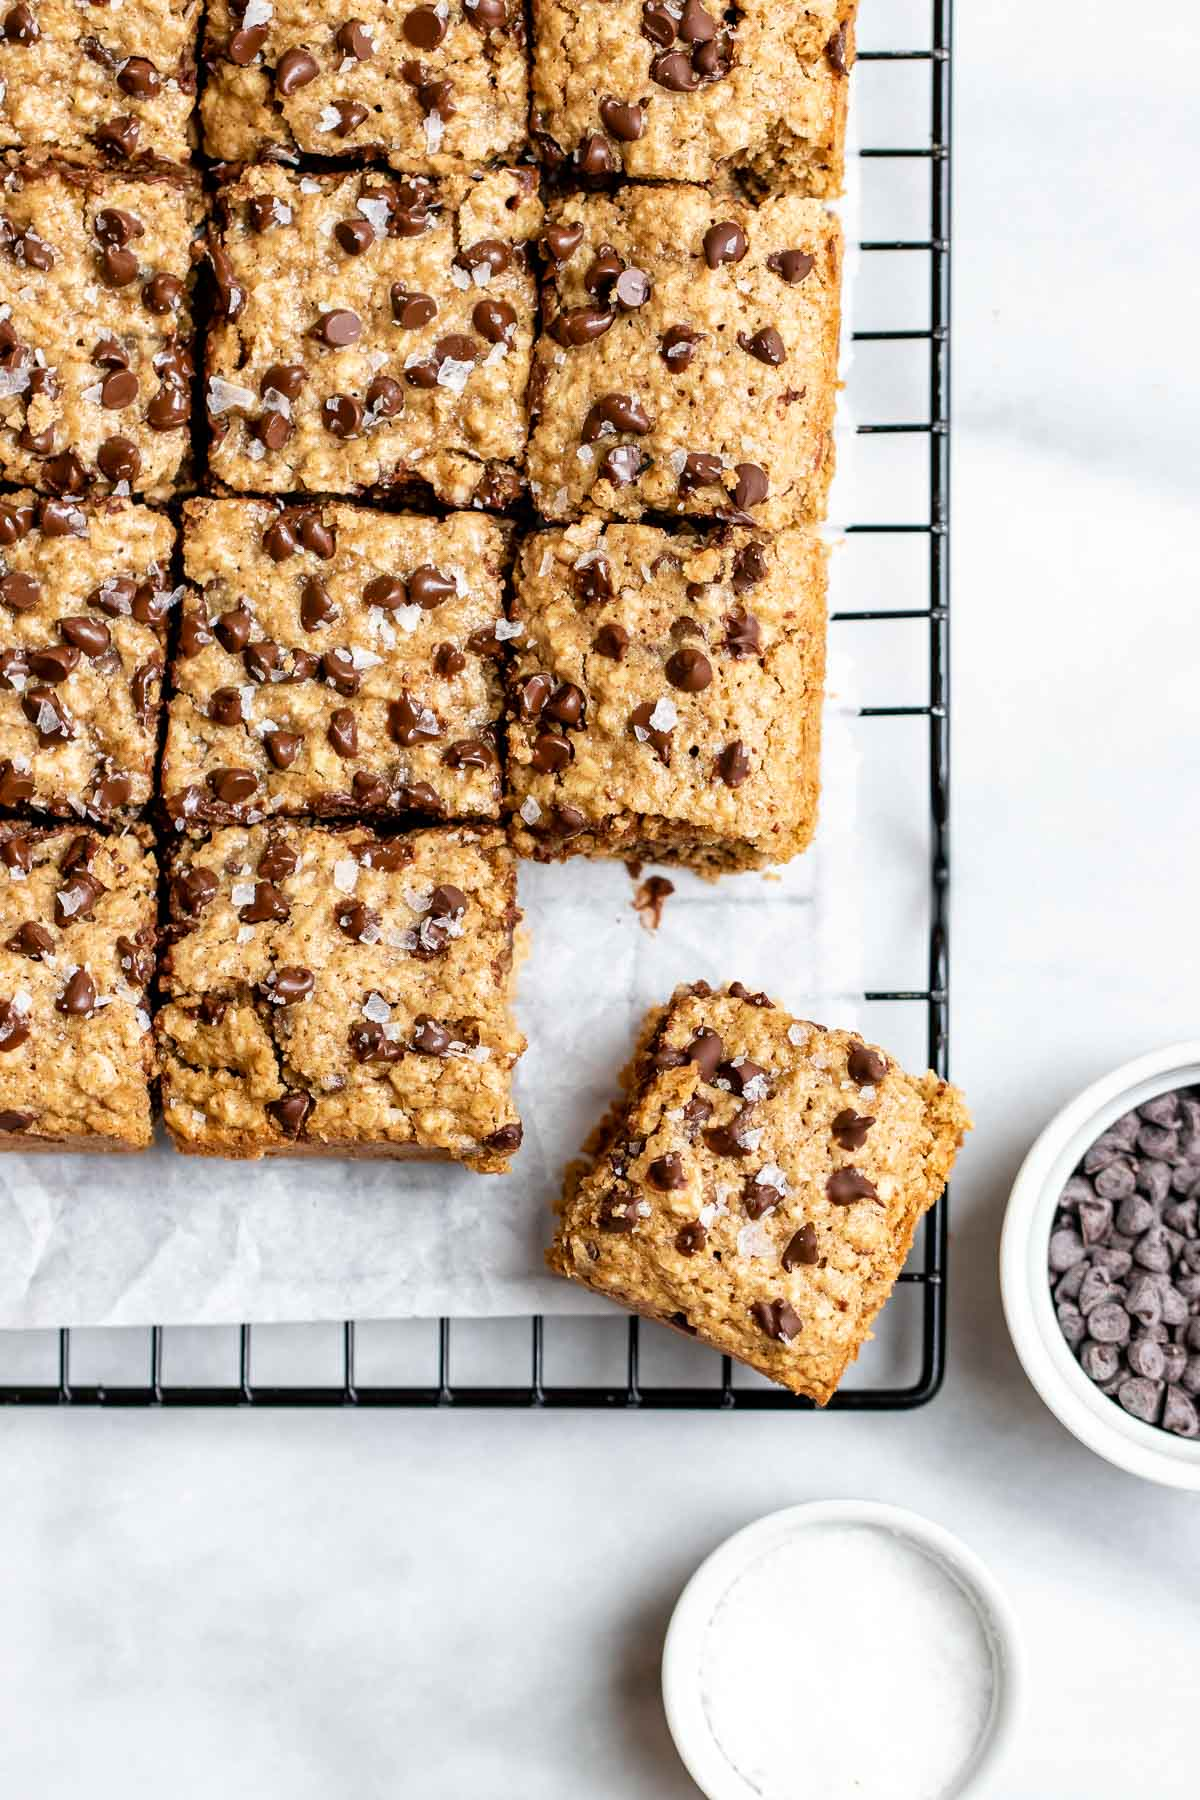 Oatmeal chocolate chip bars on a cooling rack sliced into squares.